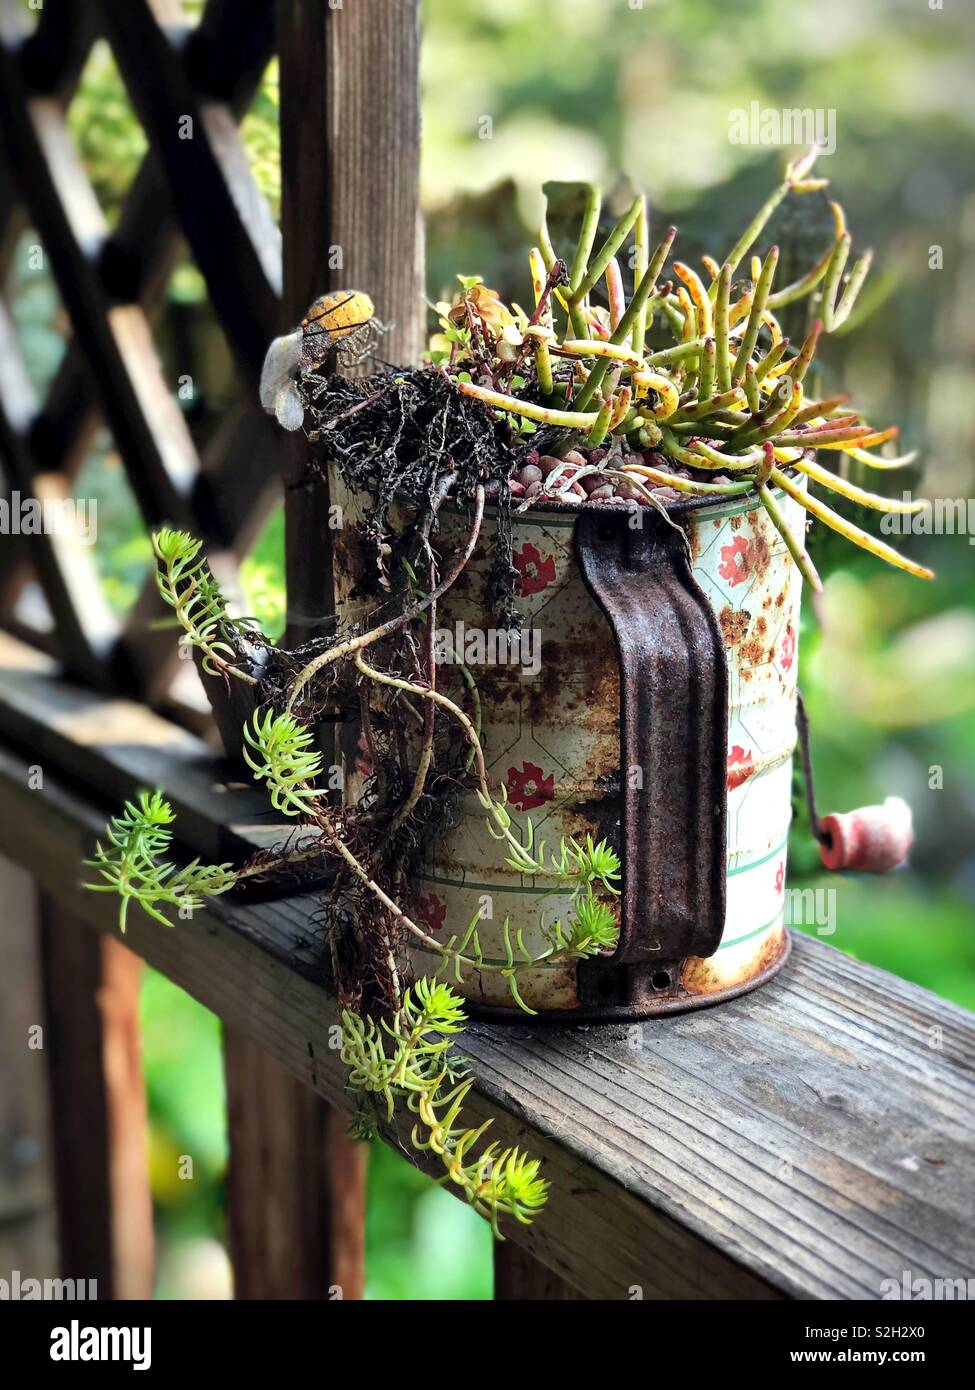 A succulent plant in an antique sifter. - Stock Image